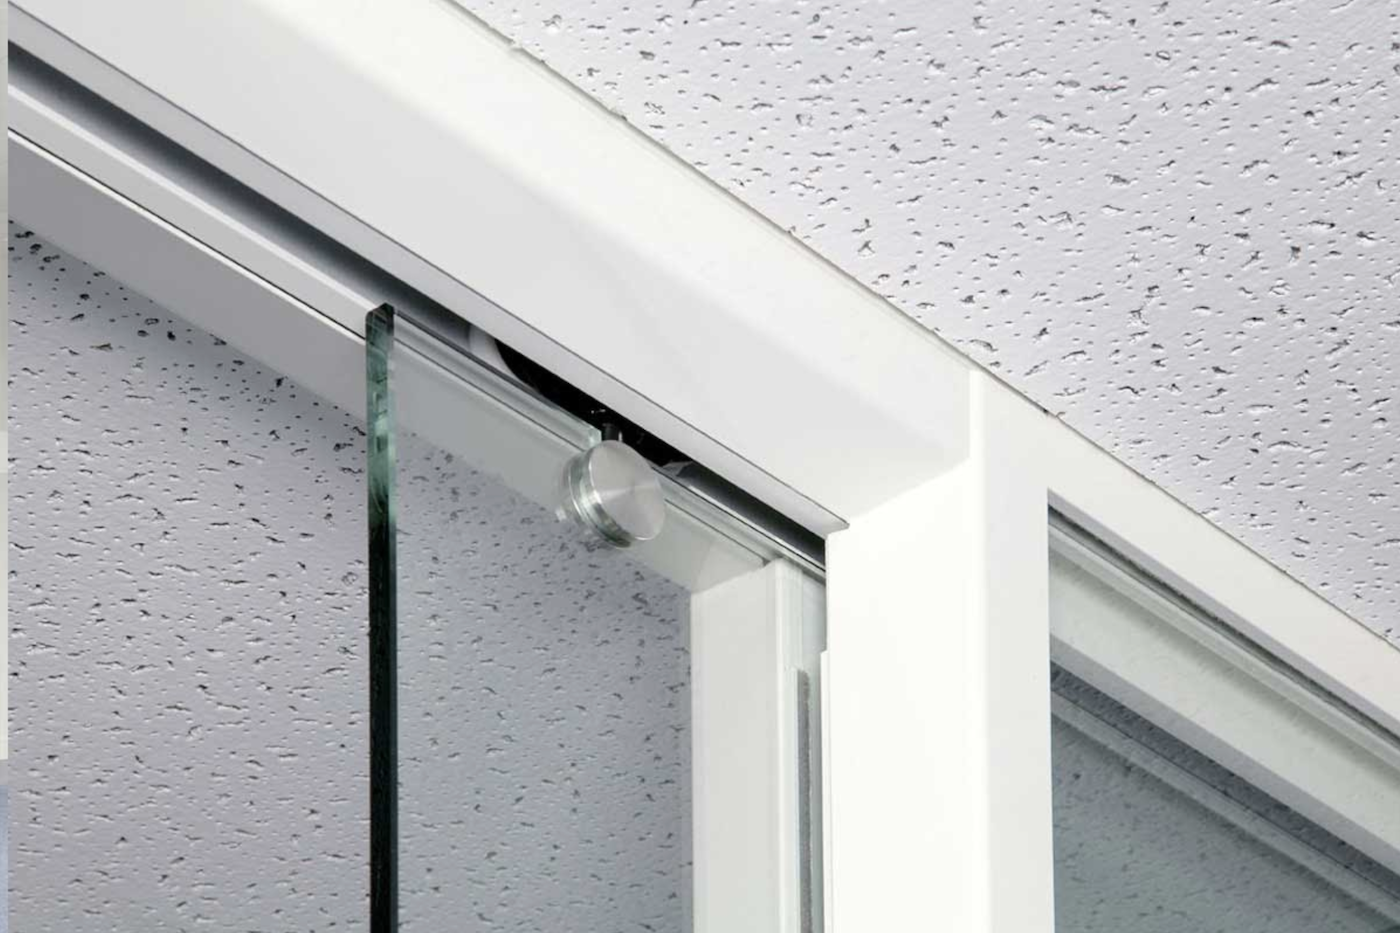 glass pocket door helps to create a peaceful office environment